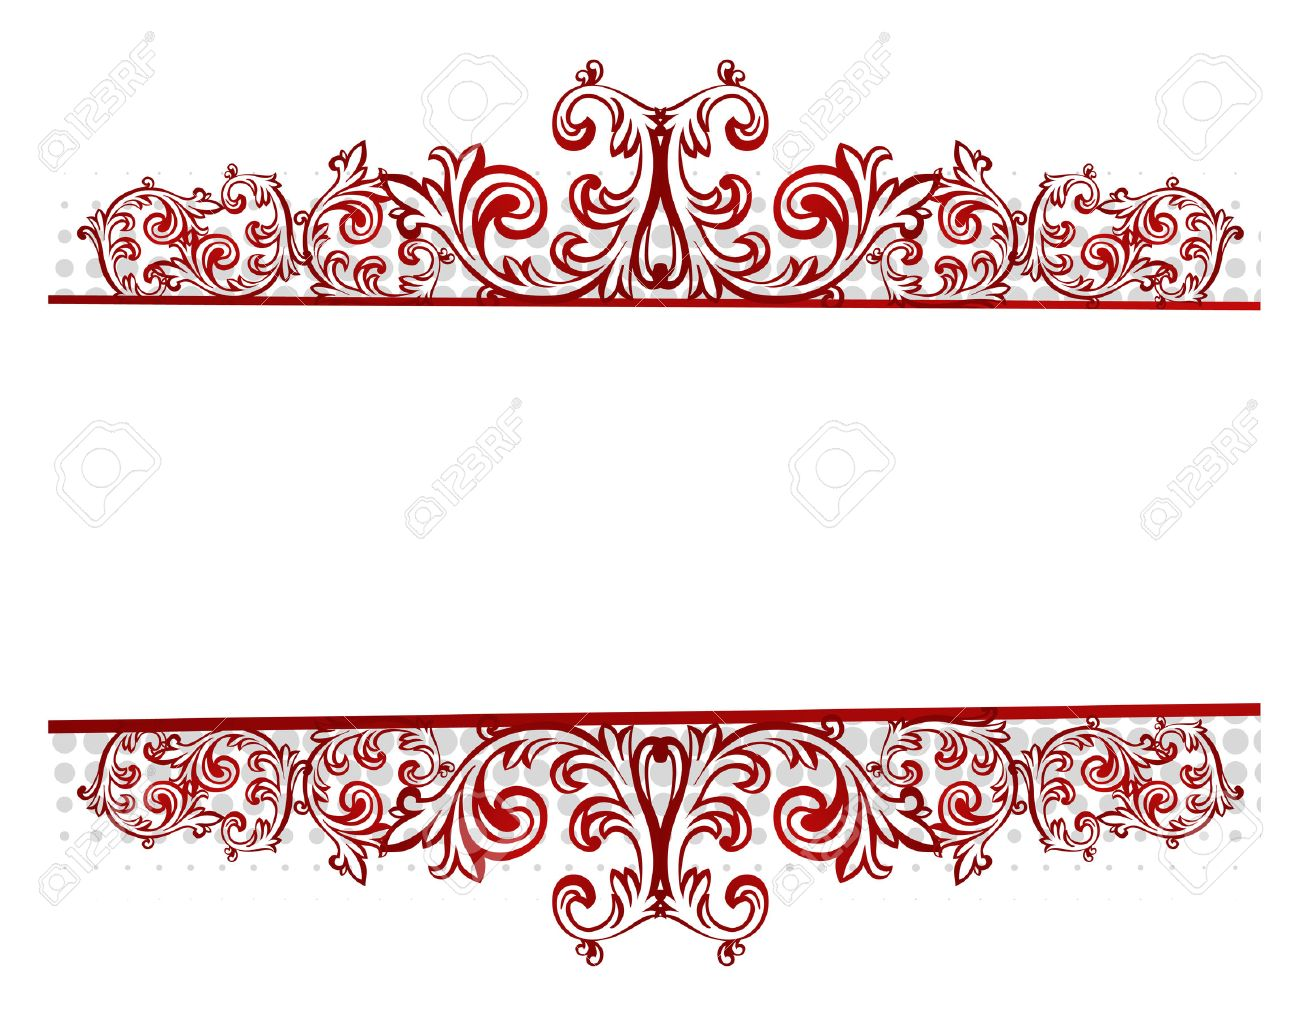 vector illustration of a floral red border royalty free cliparts